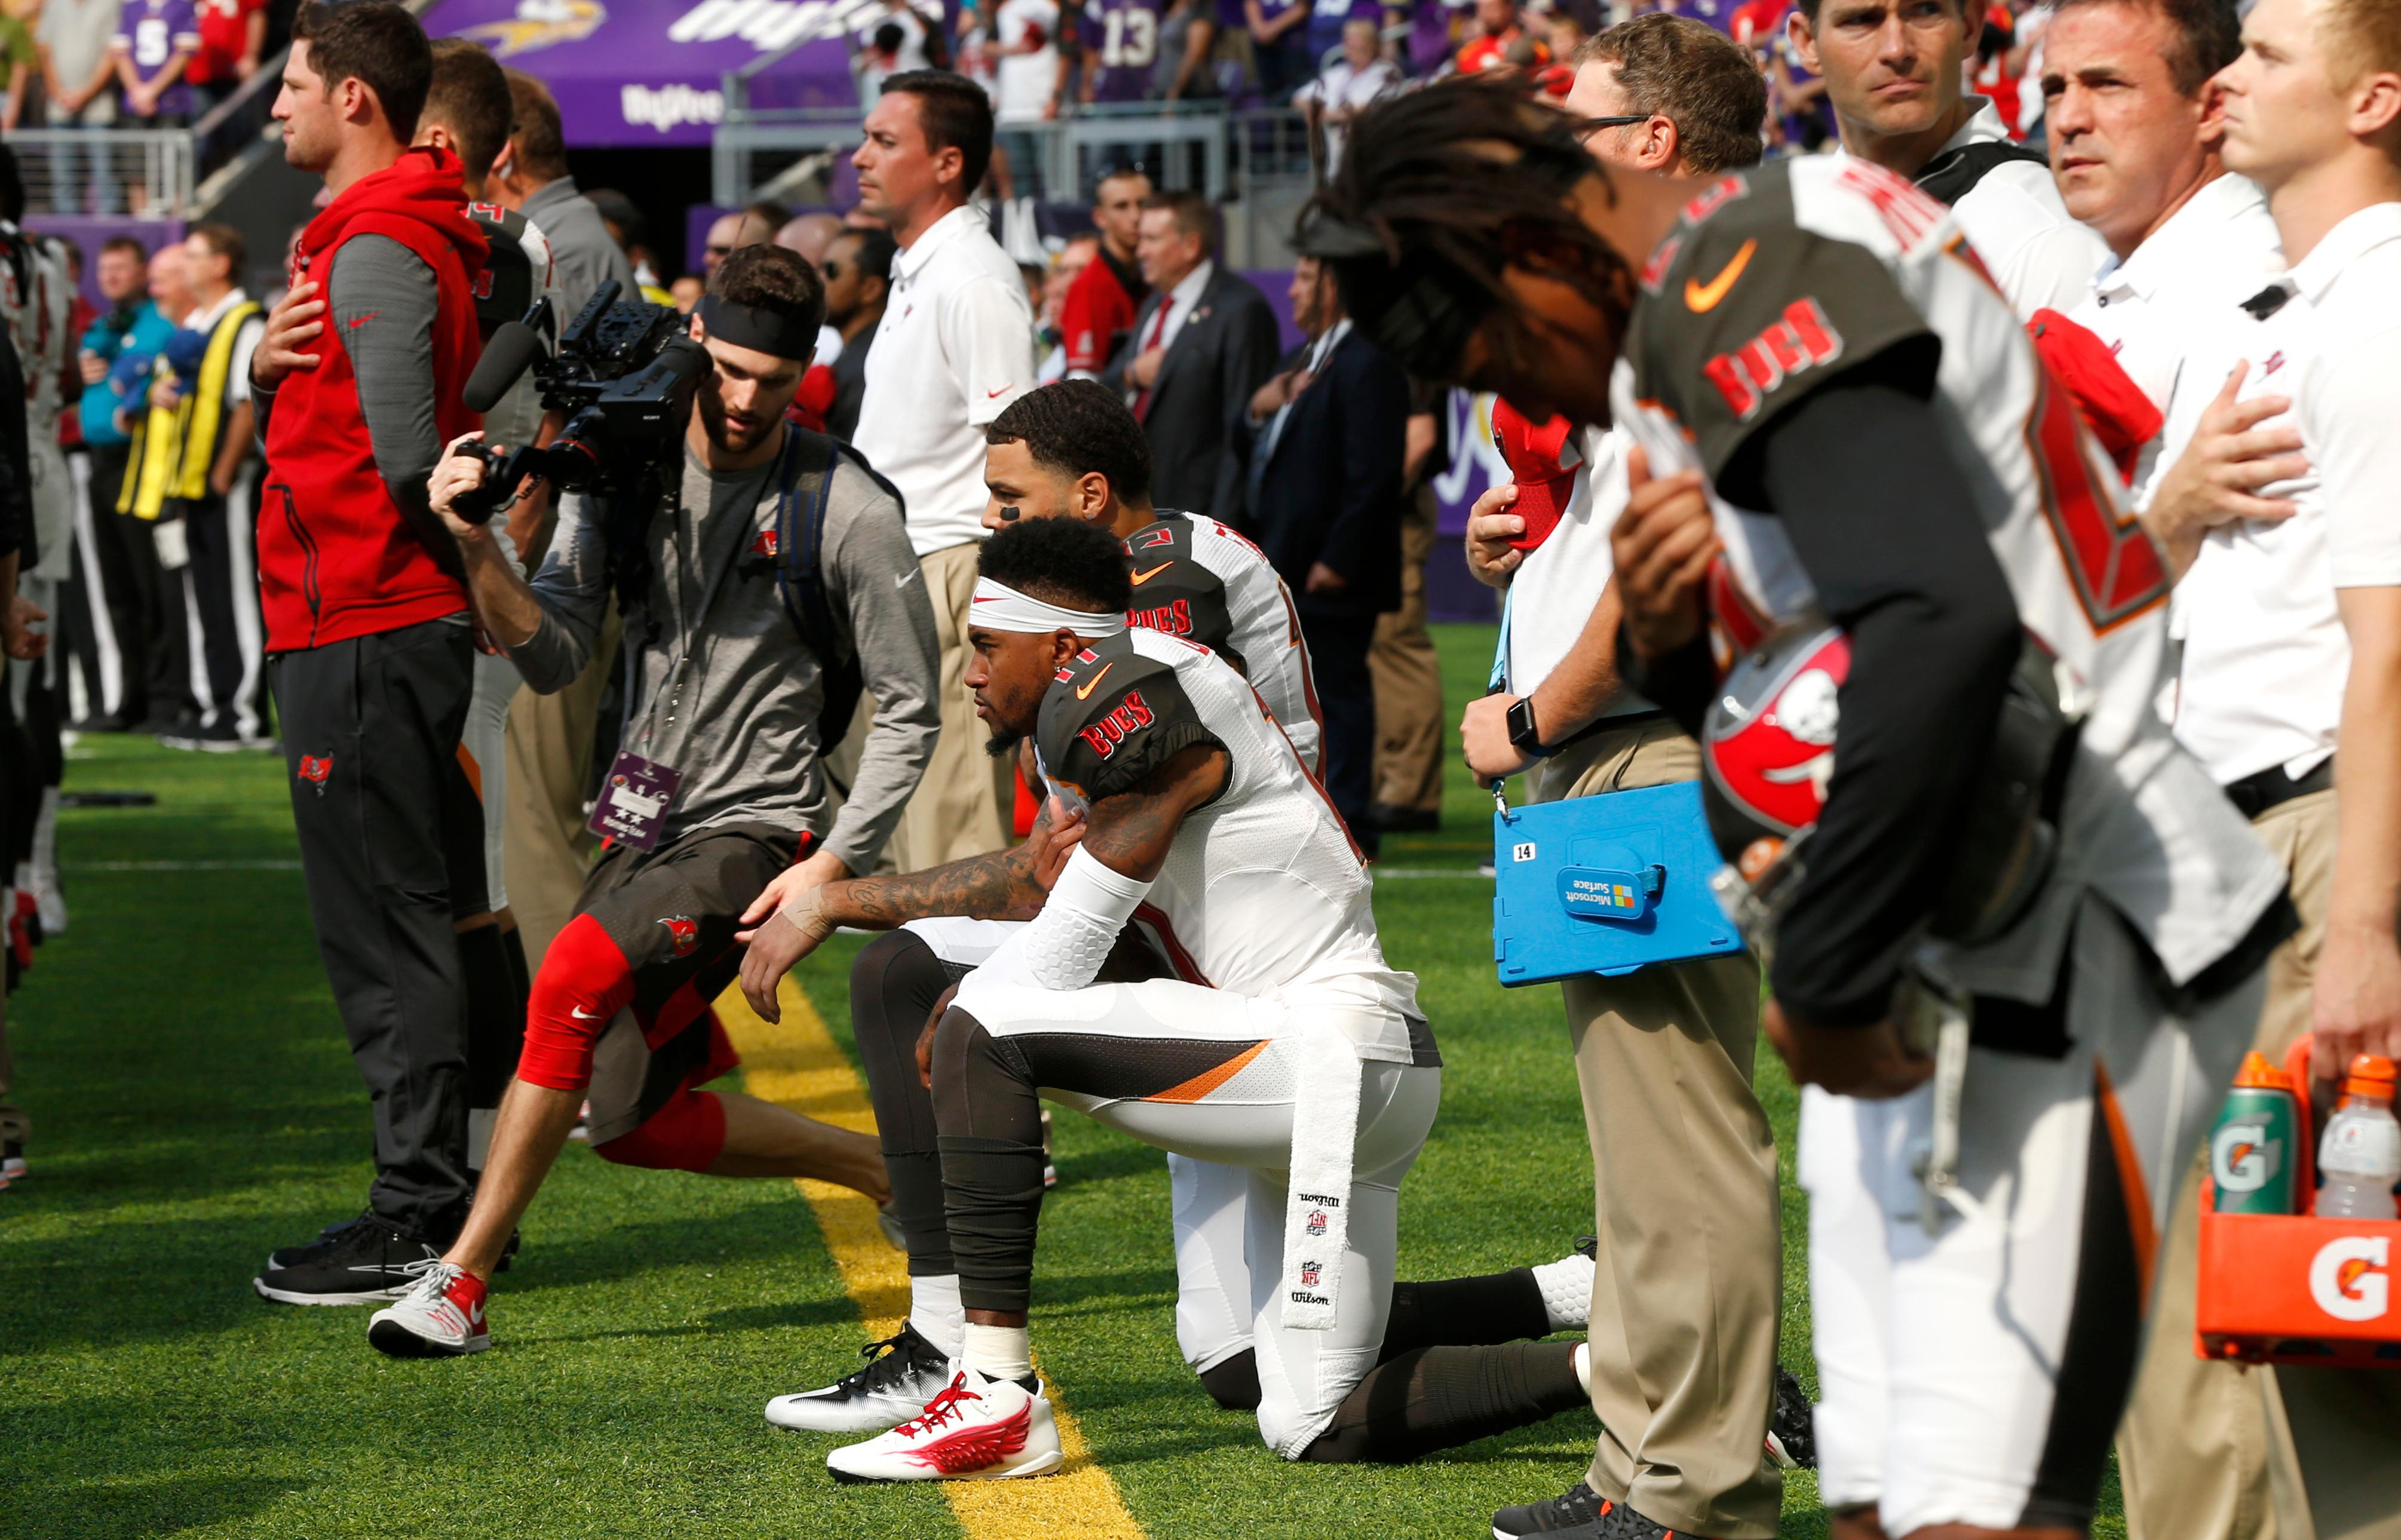 Tampa Bay Buccaneers wide receiver DeSean Jackson, center, takes a knee during the national anthem before an NFL football game against the Minnesota Vikings, Sunday, Sept. 24, 2017, in Minneapolis. (AP Photo/Jim Mone)